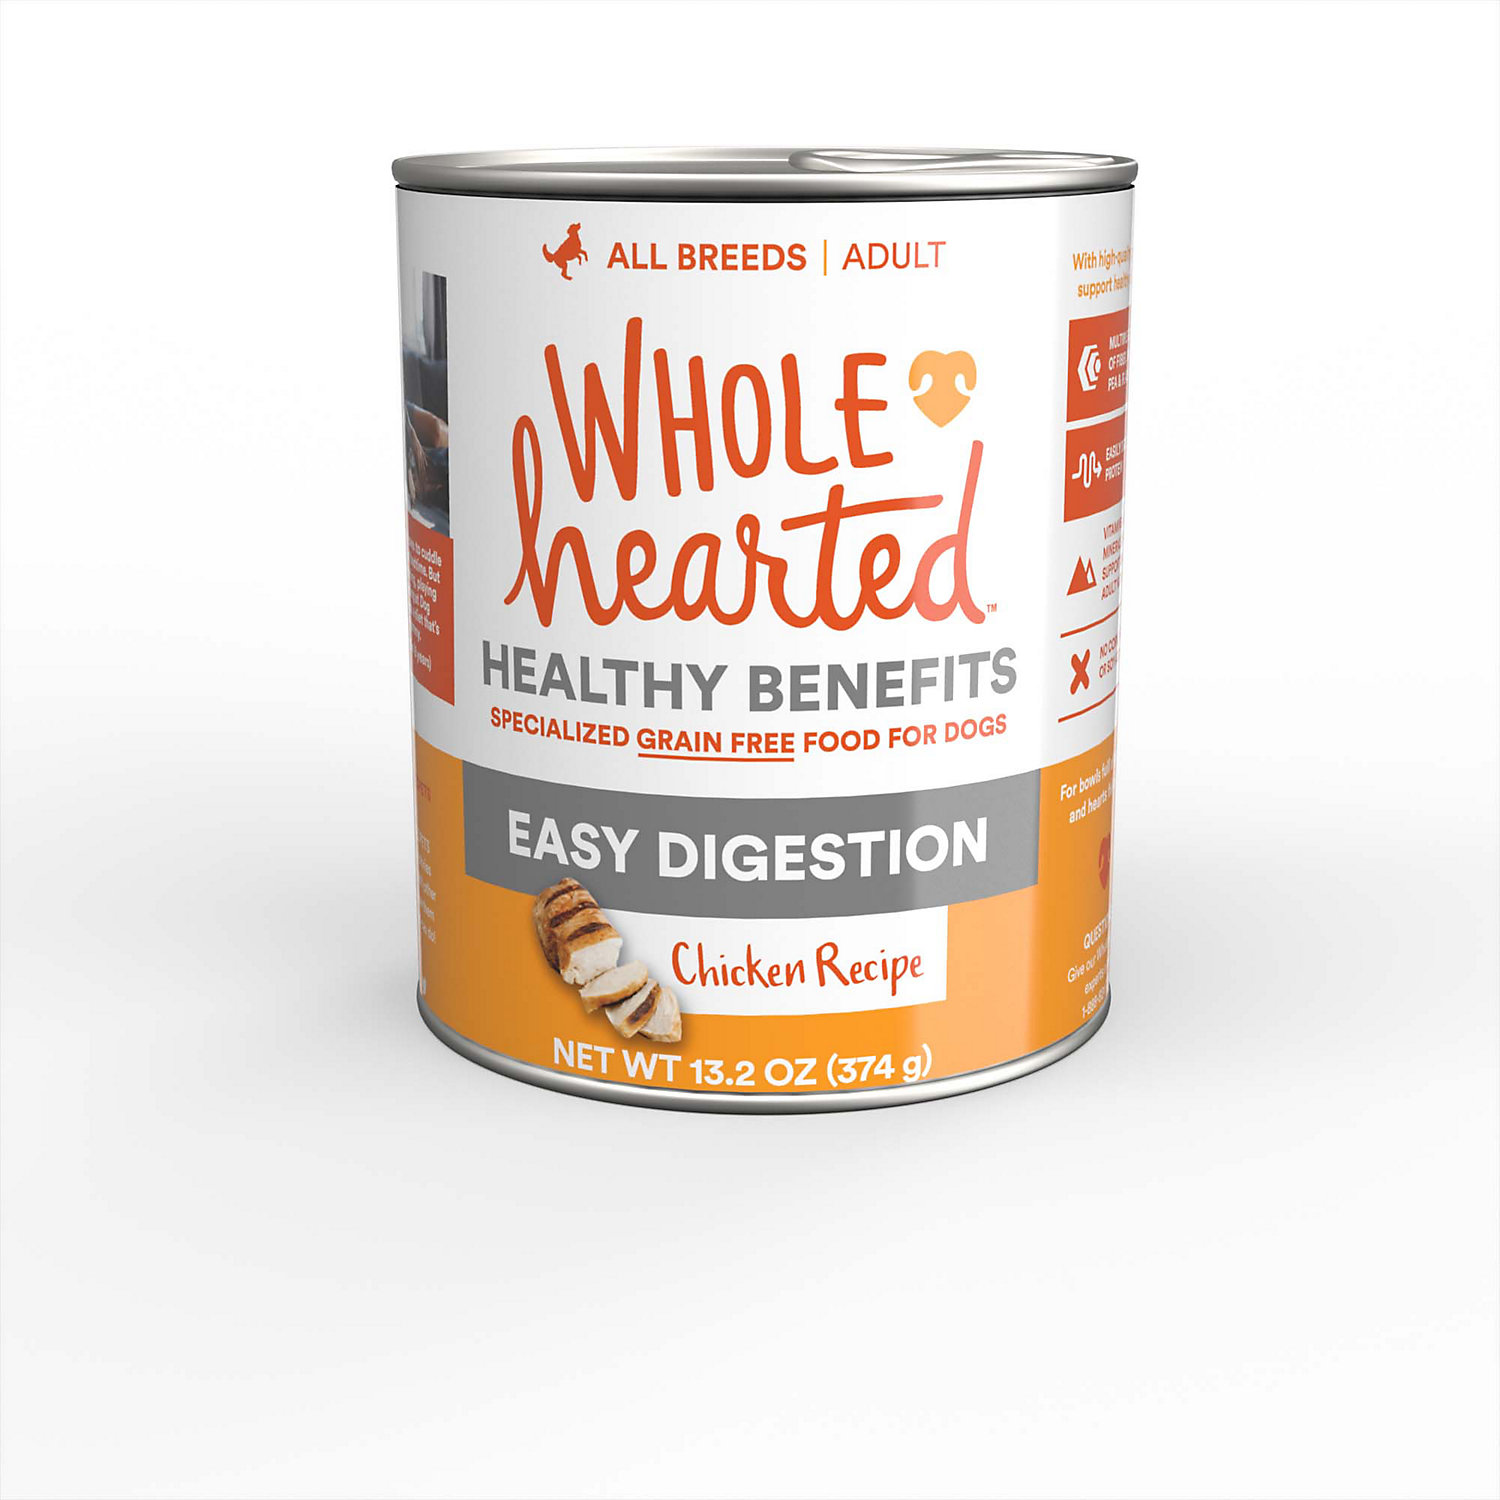 WholeHearted Easy Digestion Chicken Recipe Wet Dog Food - $26.28